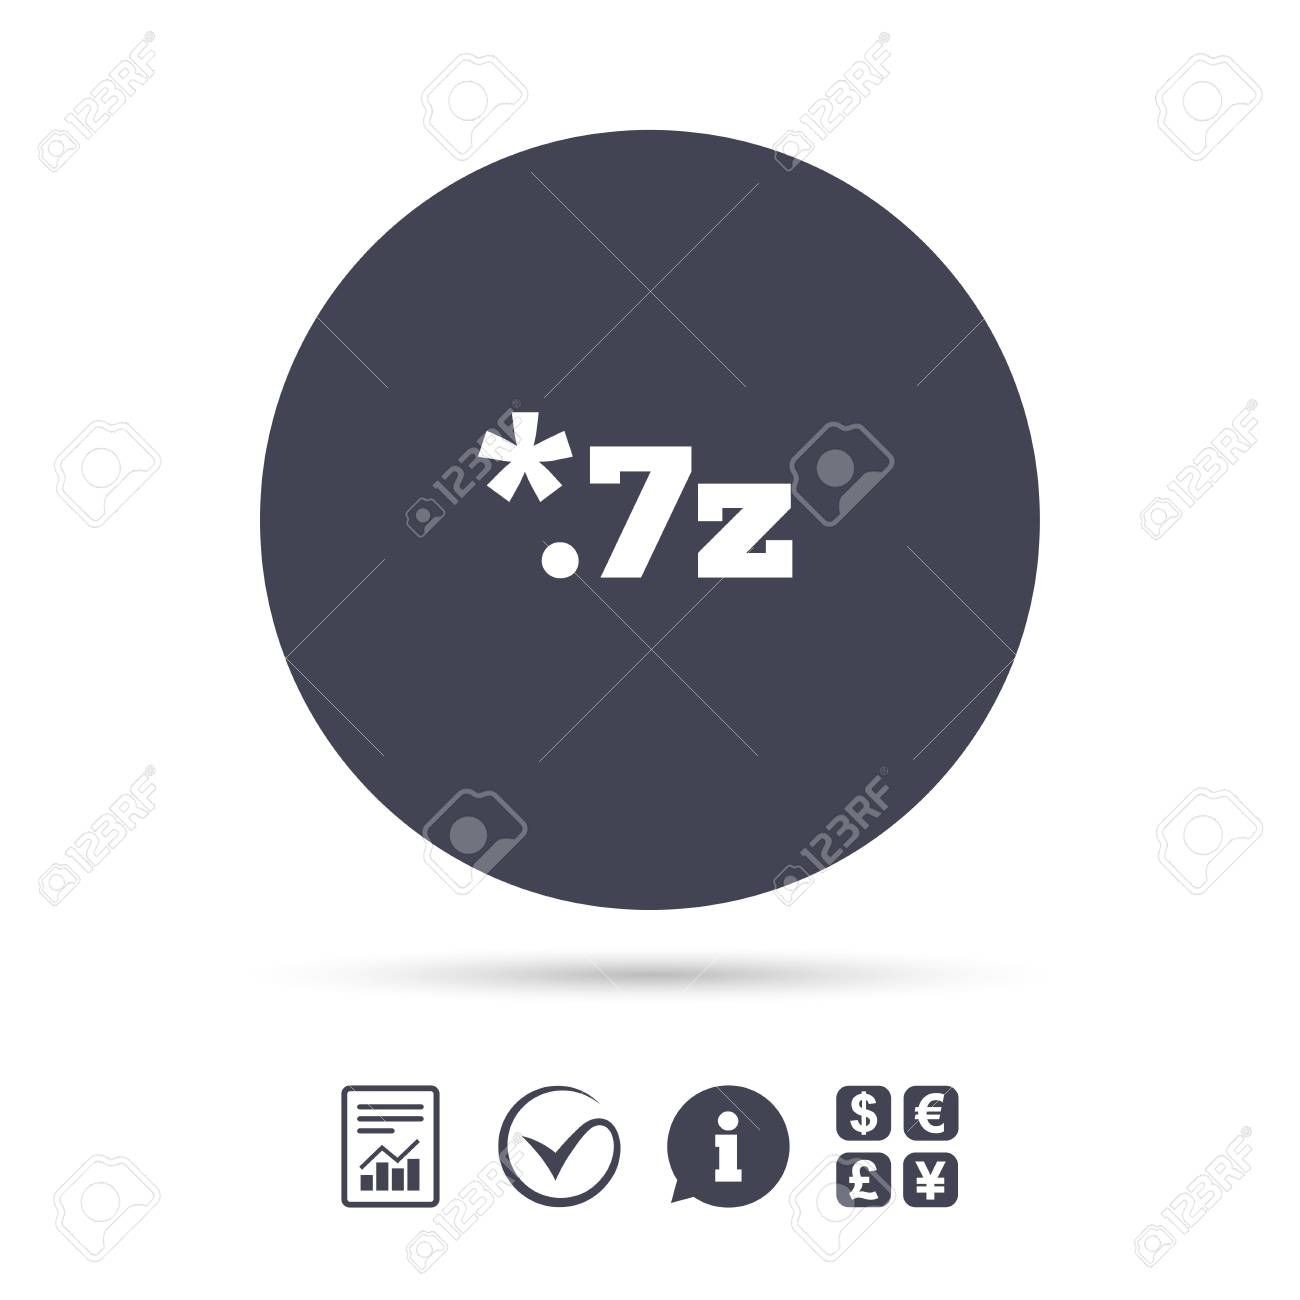 Archive file icon  Download compressed file button  7z zipped